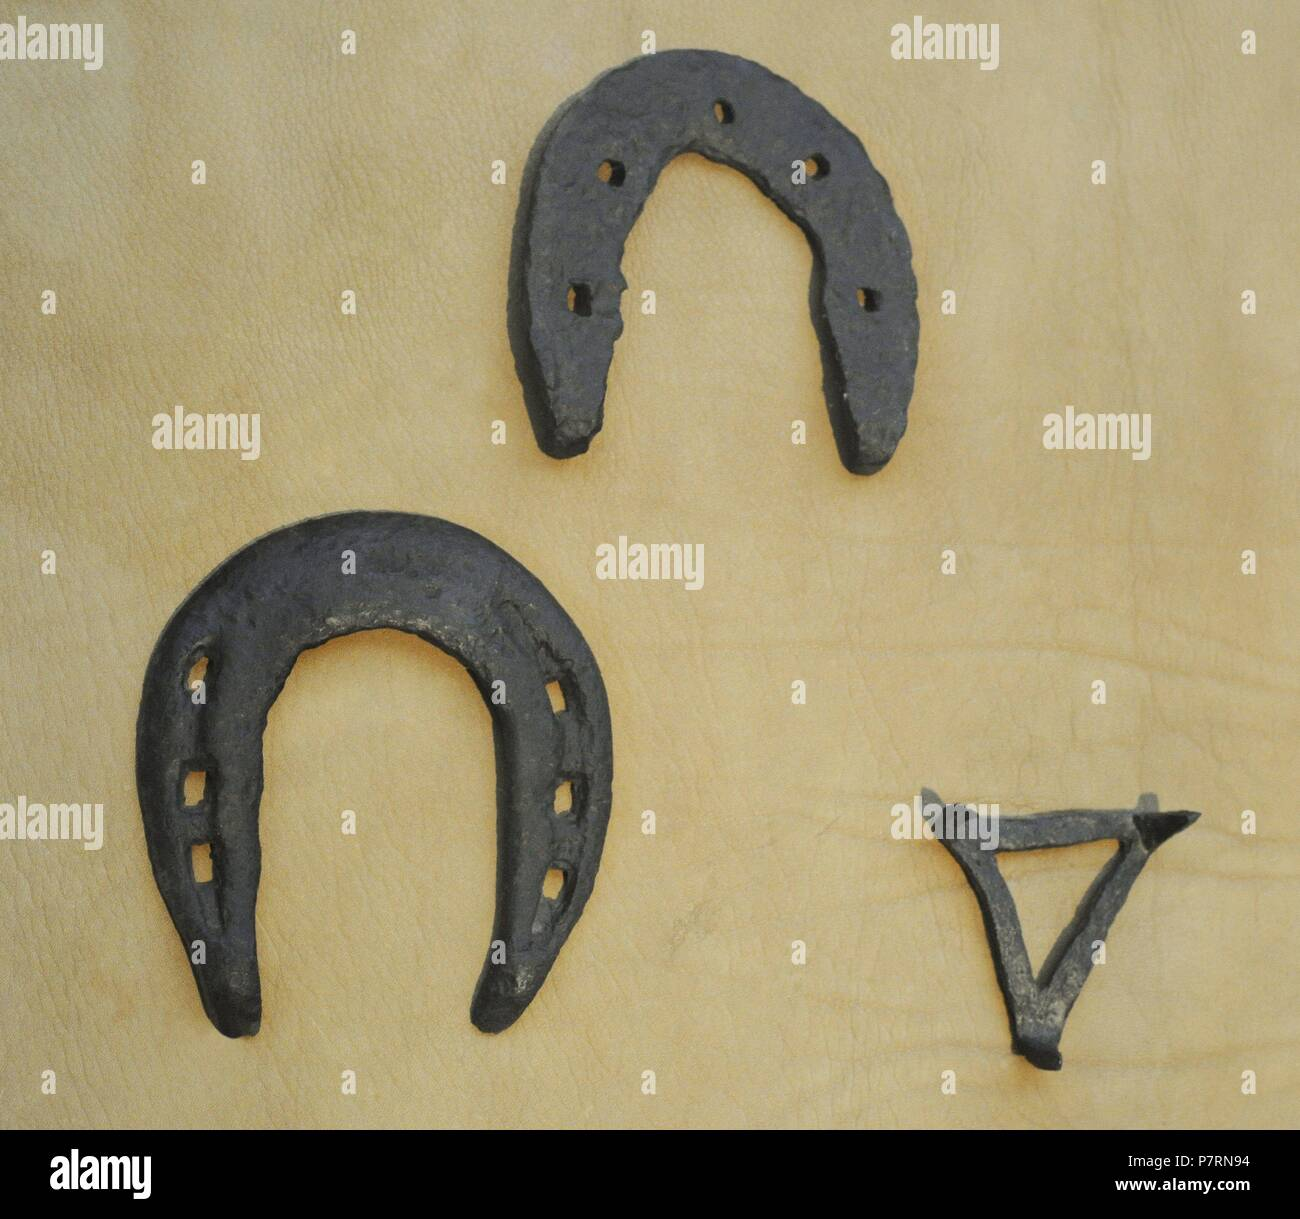 Scandinavia. Horseshoes. High Middle Ages. Crampon. Driven into the horseshoe to prevent slipping on ice. Norway. Historical Museum. Oslo. Norway. - Stock Image